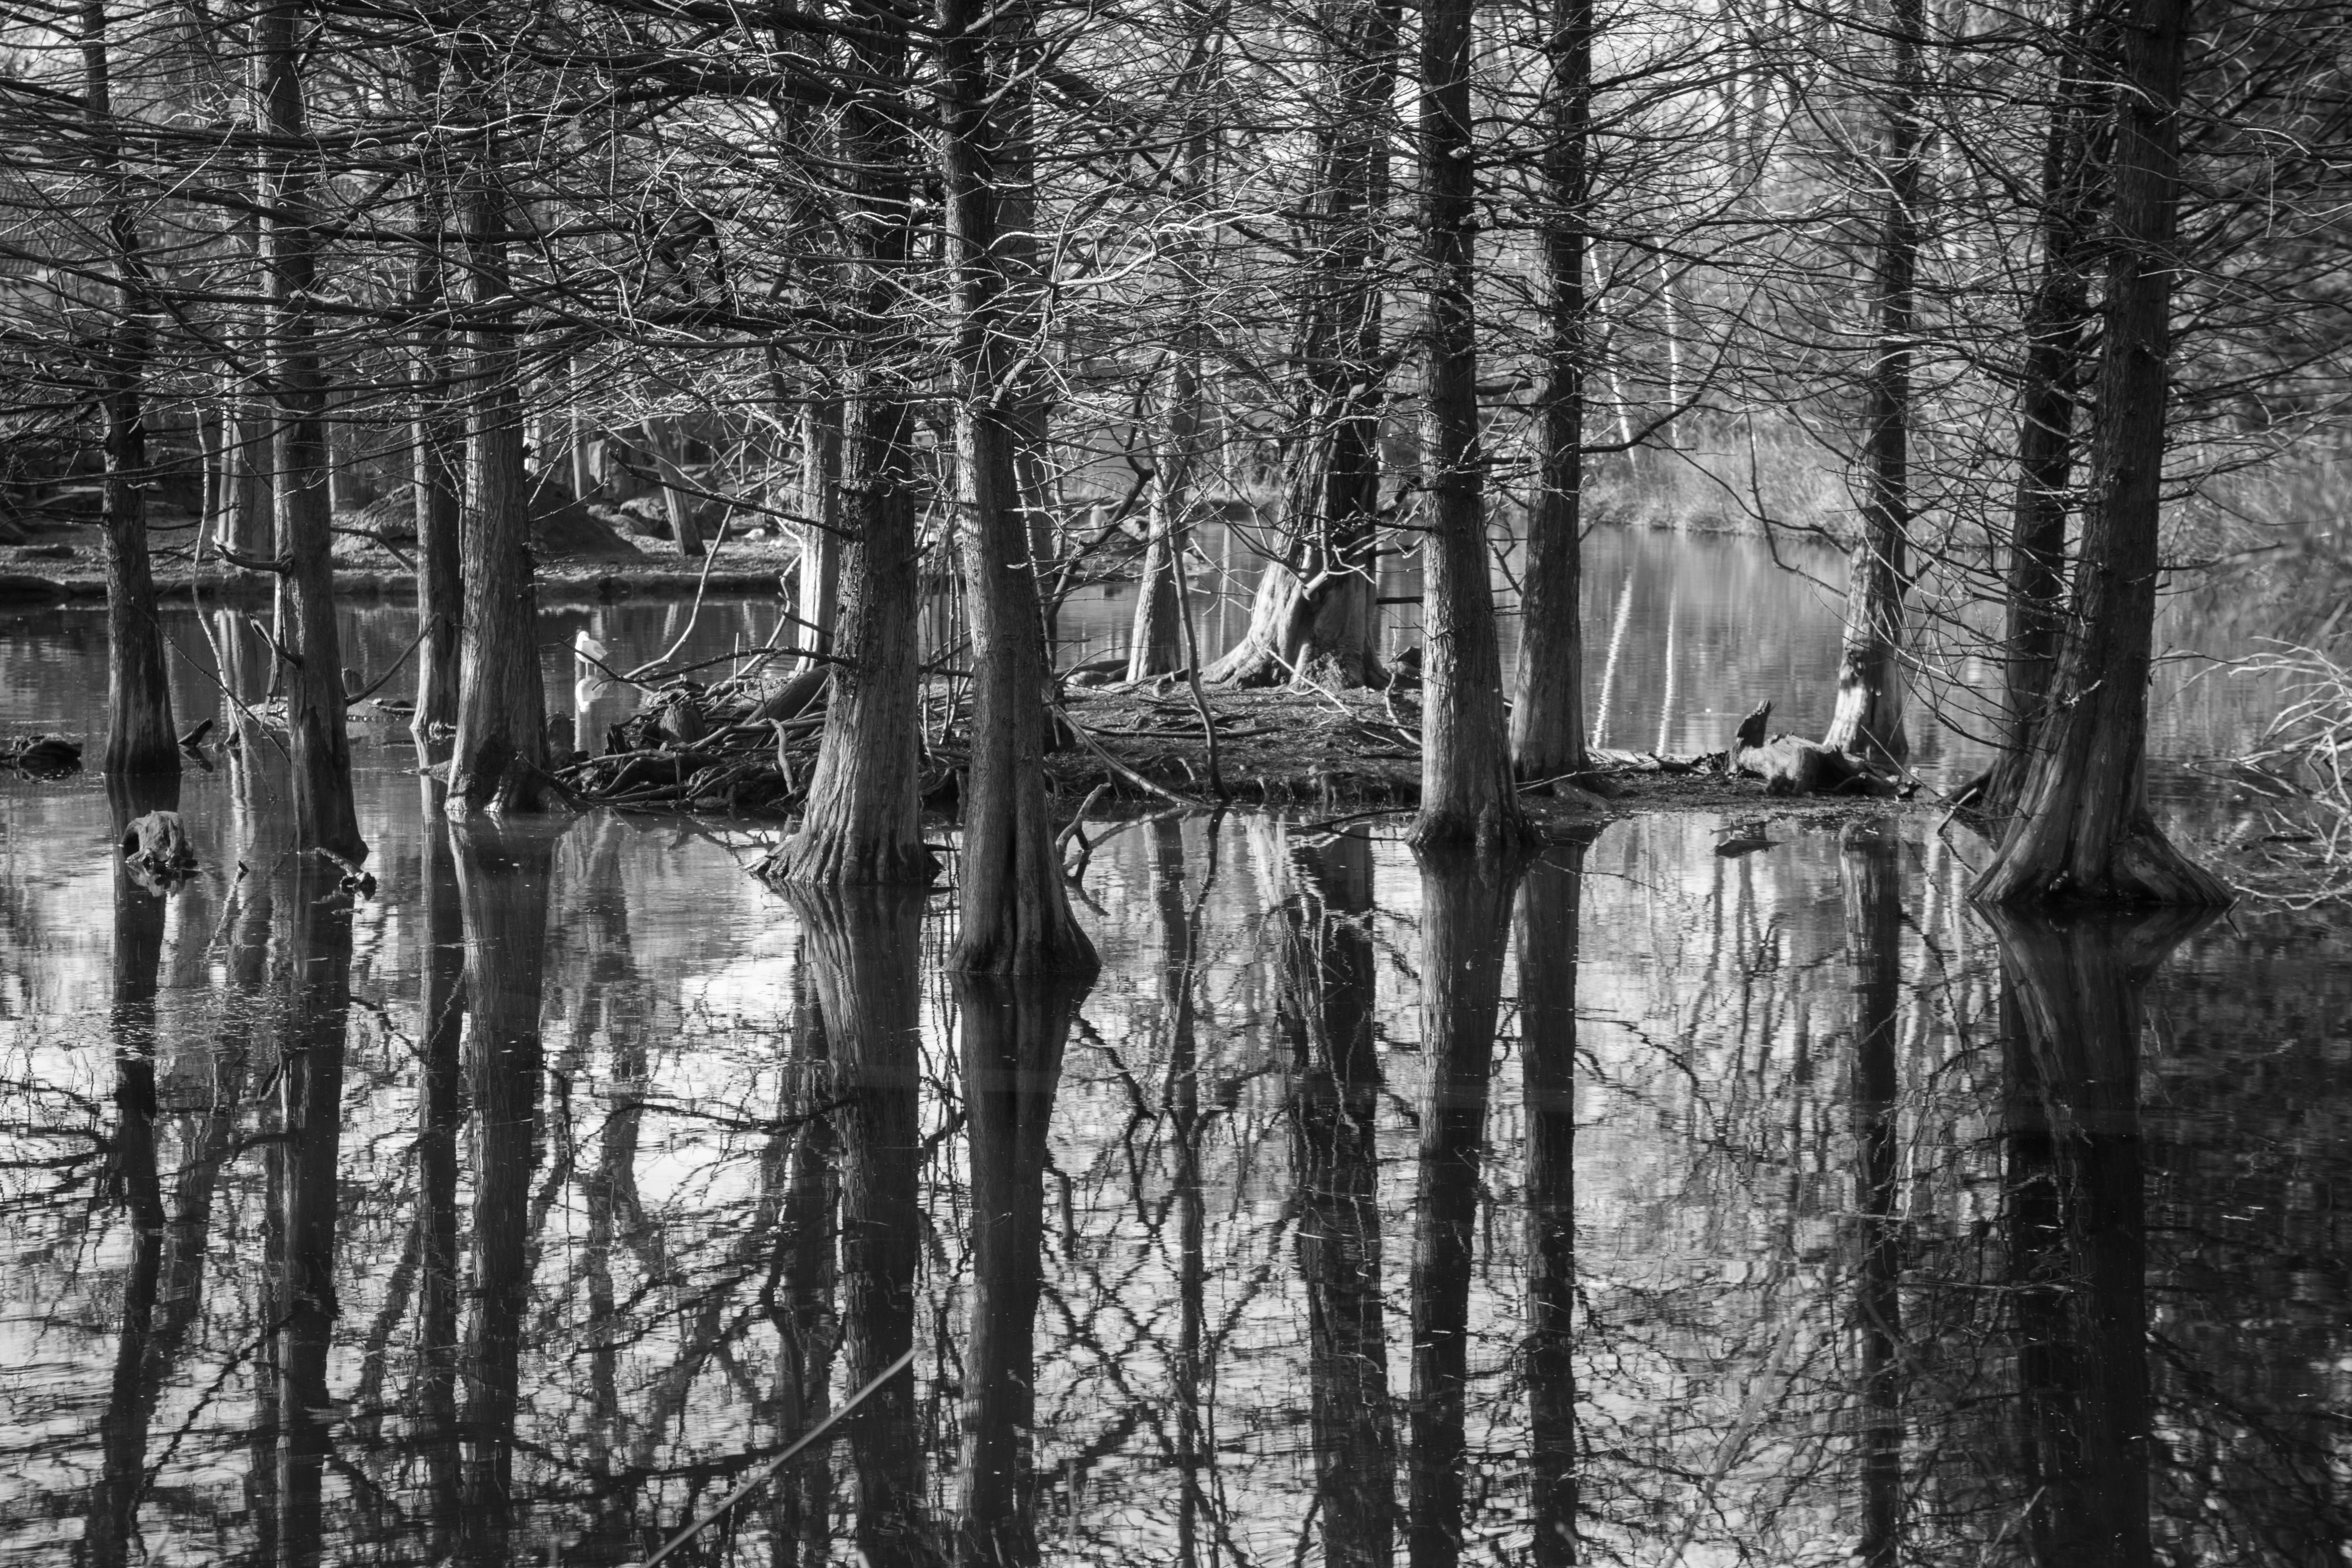 Gray Scale Photography Of Trees Surrounded By Body Of Water Free